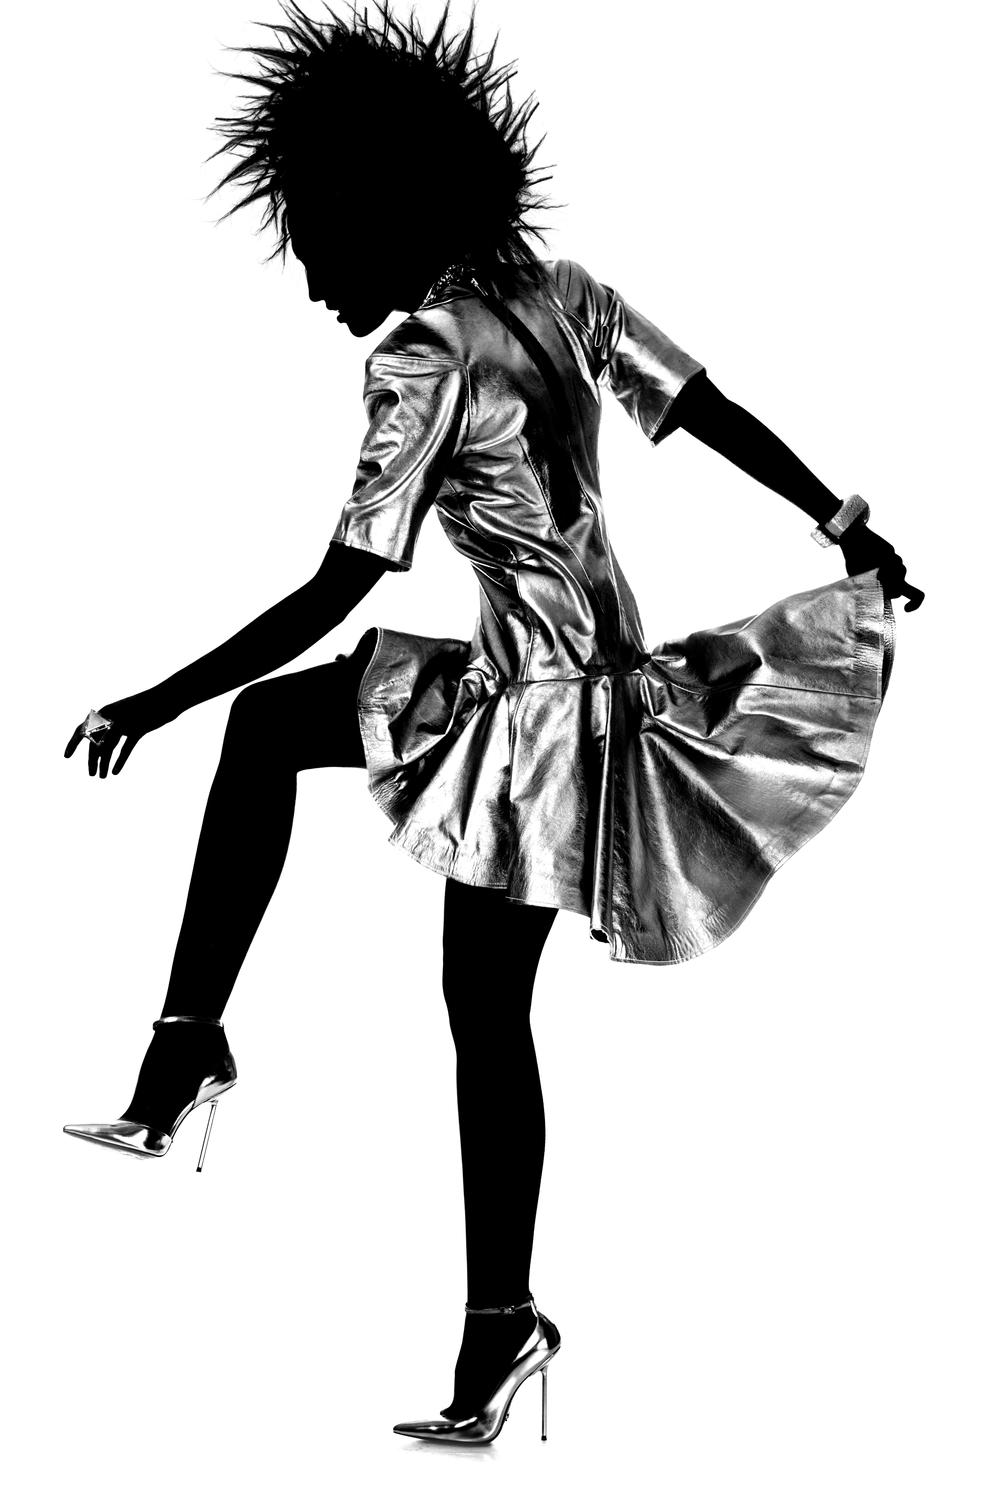 Metallic Fashion Editorial by Lindsay Adler Photography, NYC Fashion Photographer